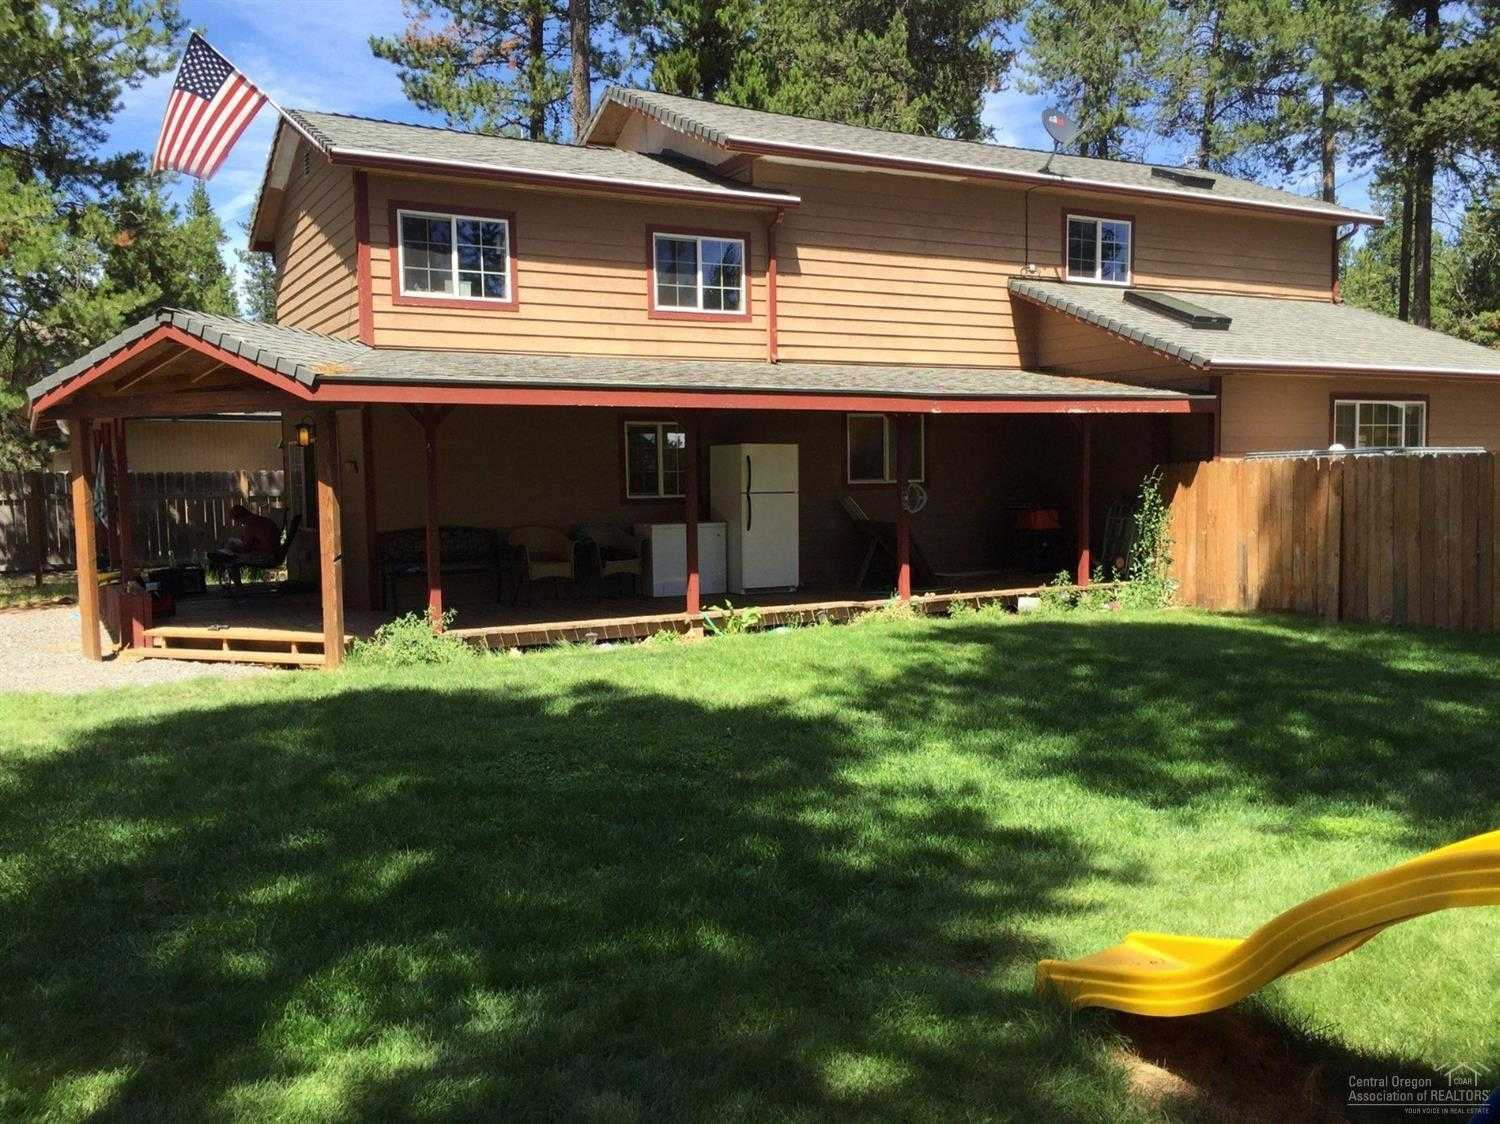 $425,000 - 3Br/2Ba -  for Sale in Oww2, Bend